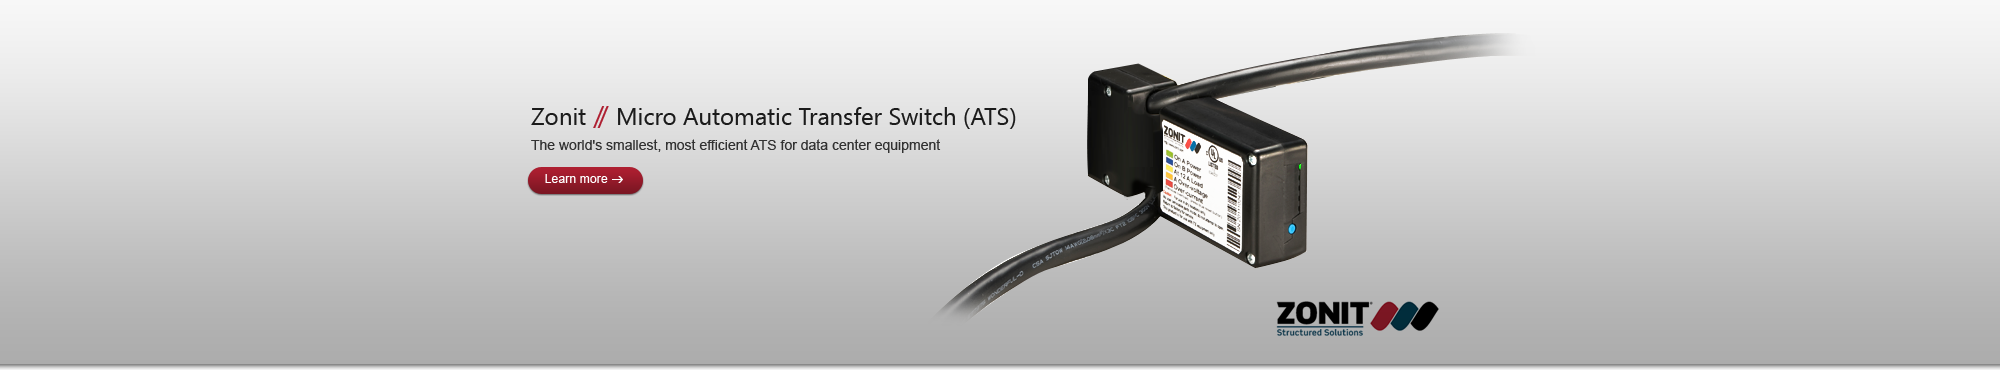 Zonit Micro Automatic Transfer Switch